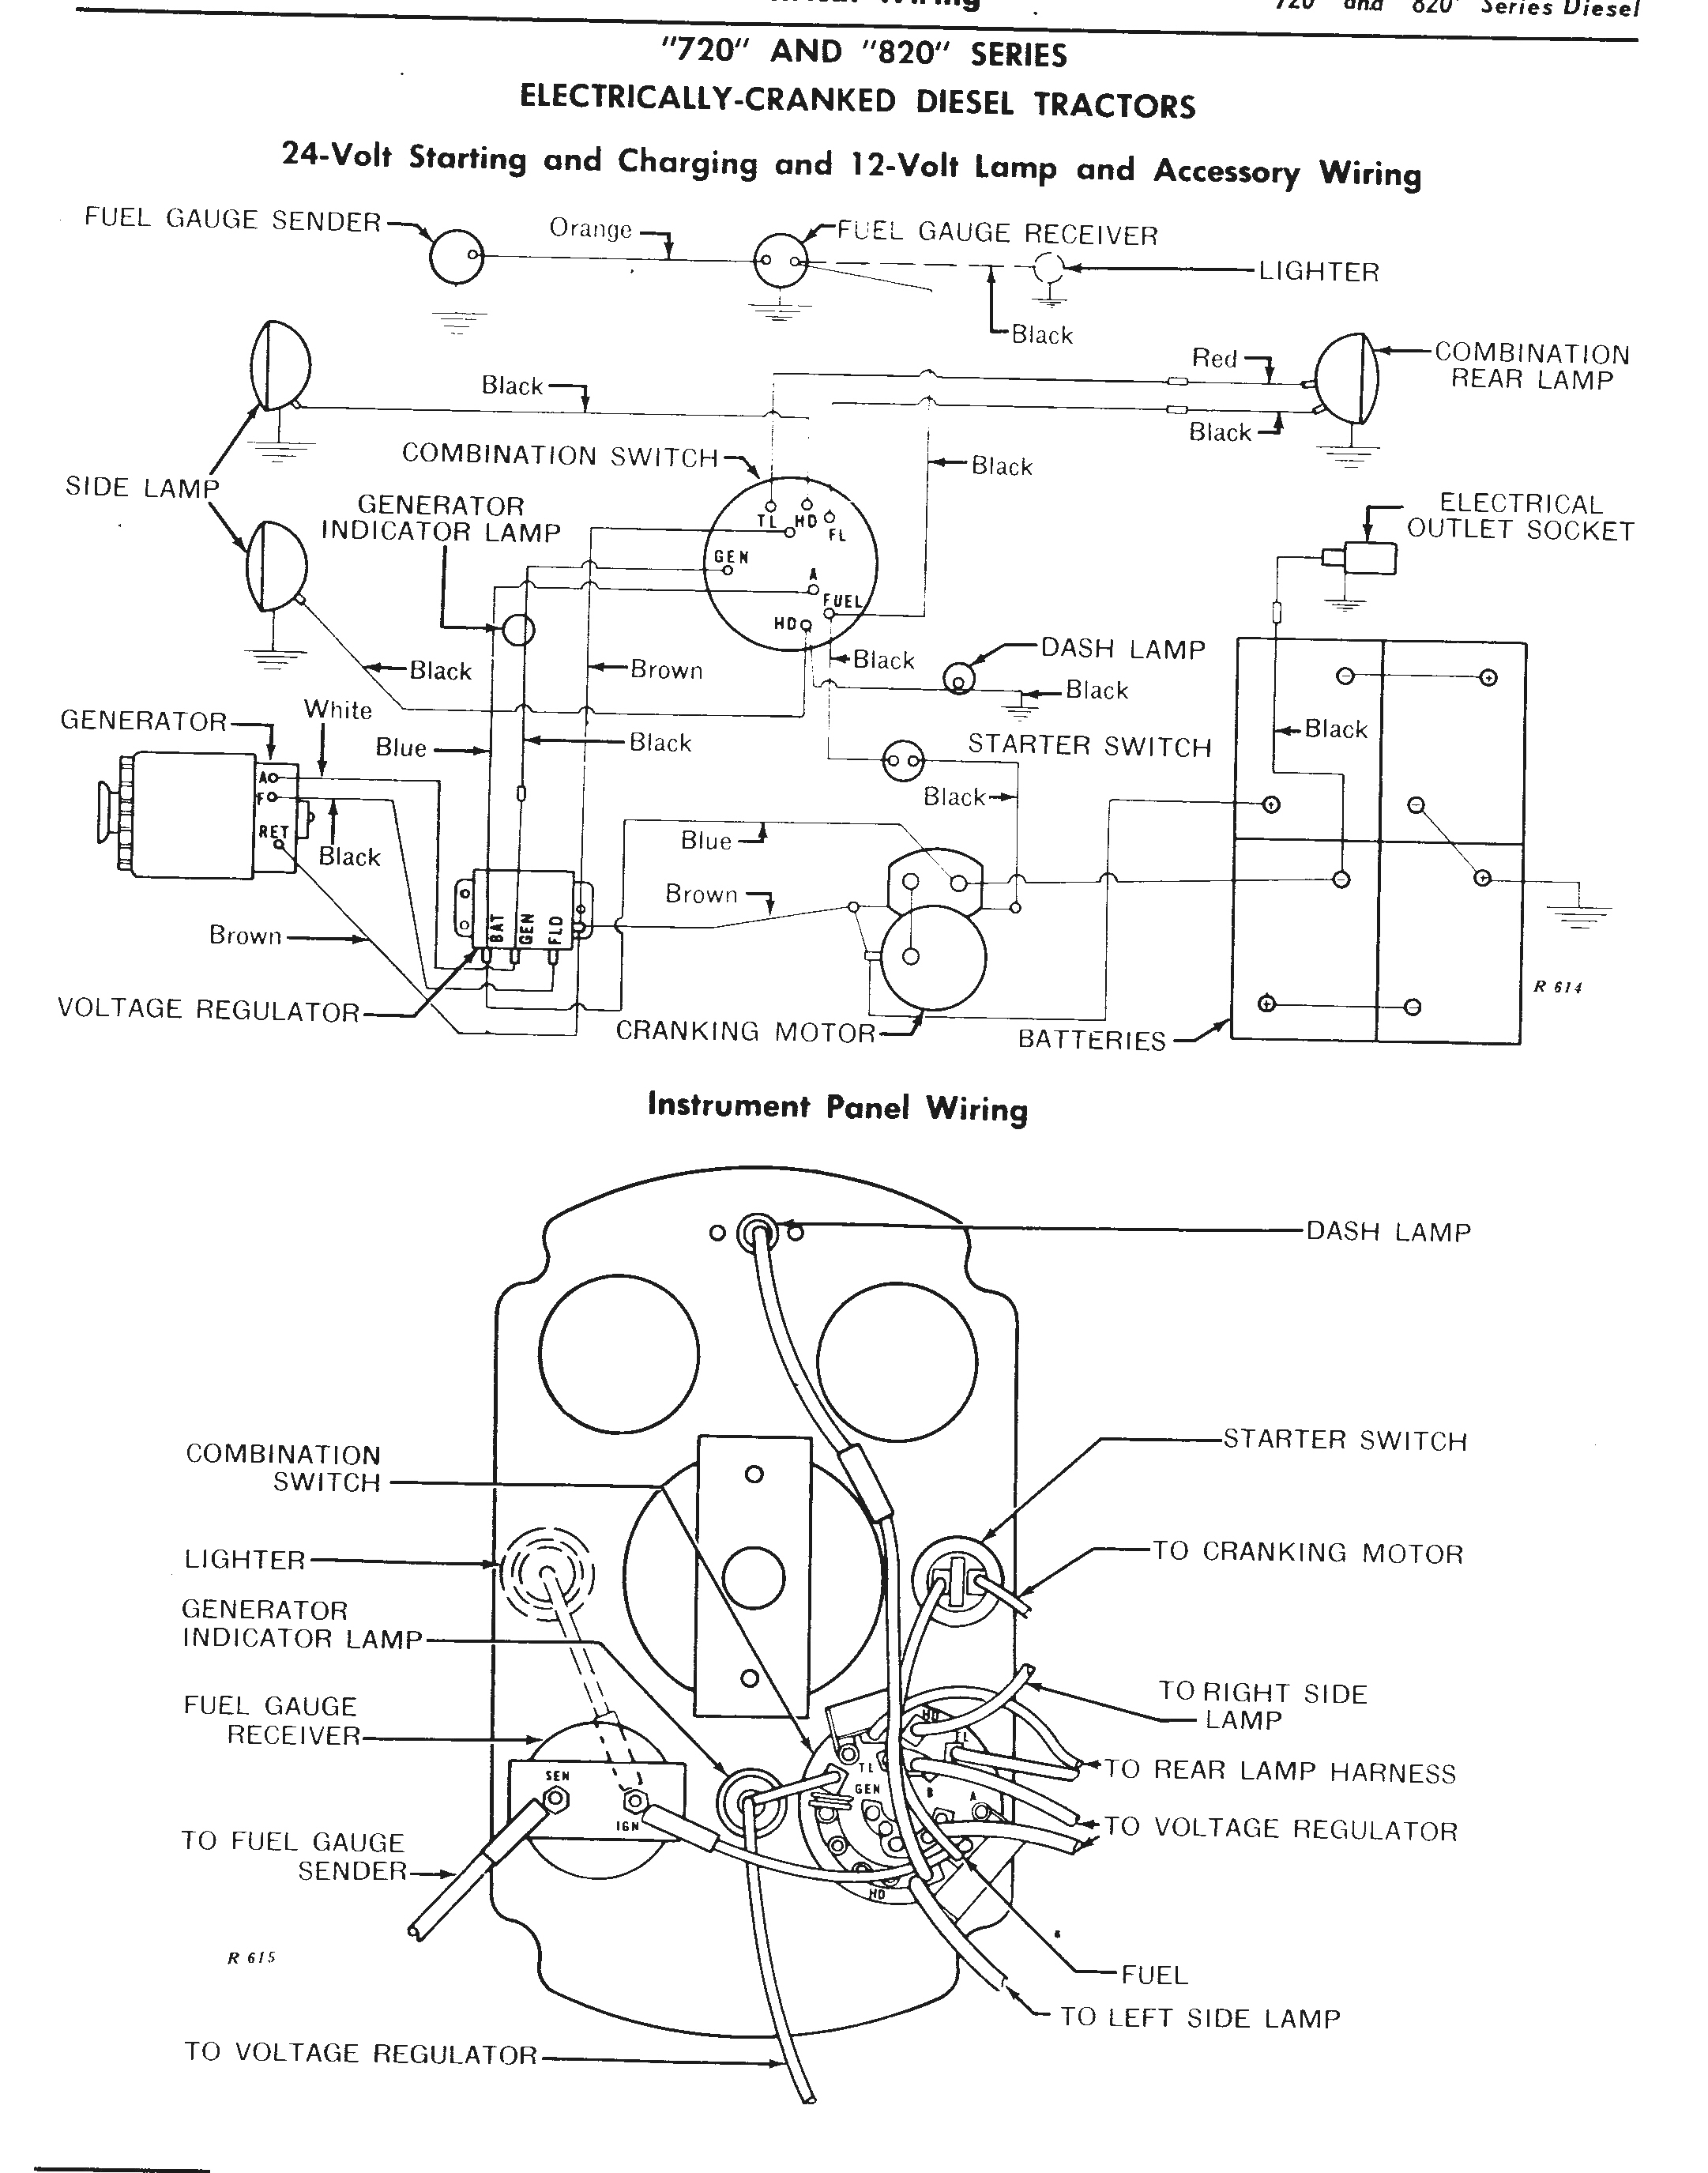 Wiring Diagram For 3600 Ford Tractor – The Wiring Diagram ... on tractor starter relay, tractor controls diagram, ford 800 tractor engine diagram, tractor tires diagram, tractor hydraulic system diagram, tractor starter motor diagram, tractor starter solenoid, tractor steering diagram, ford starter relay diagram, tractor electrical diagram, tractor starting diagram, tractor ignition diagram, ford tractor starter diagram, tractor relay diagram, tractor starter repair, tractor hydraulic oil filters, tractor transmission diagram,